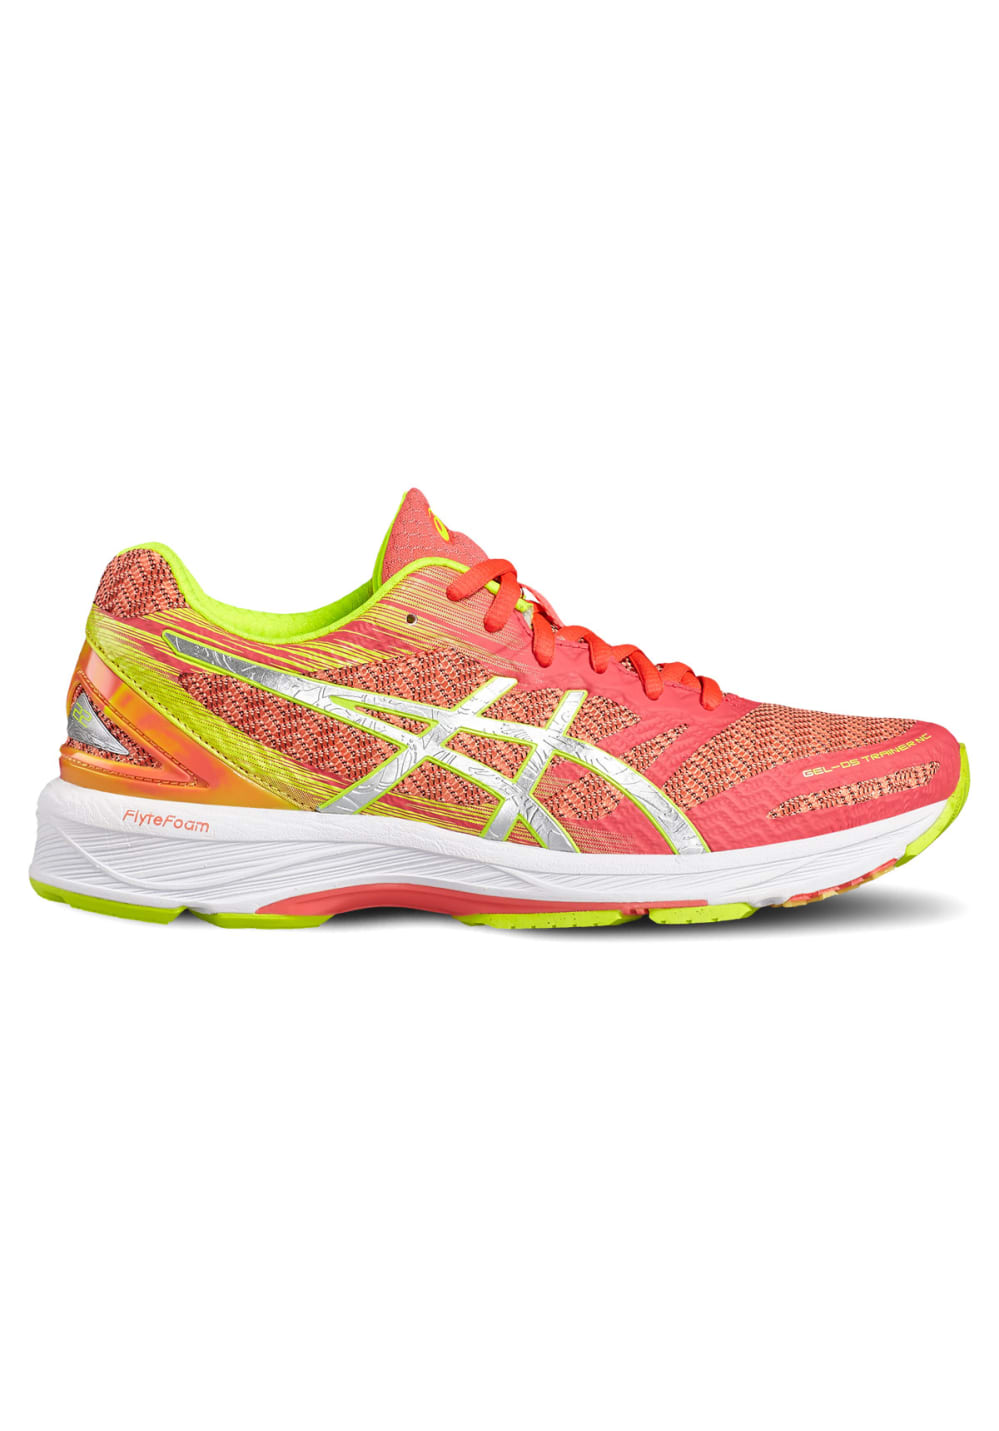 46c3bae2e5 ASICS GEL-DS Trainer 22 Neutral - Running shoes for Women - Pink